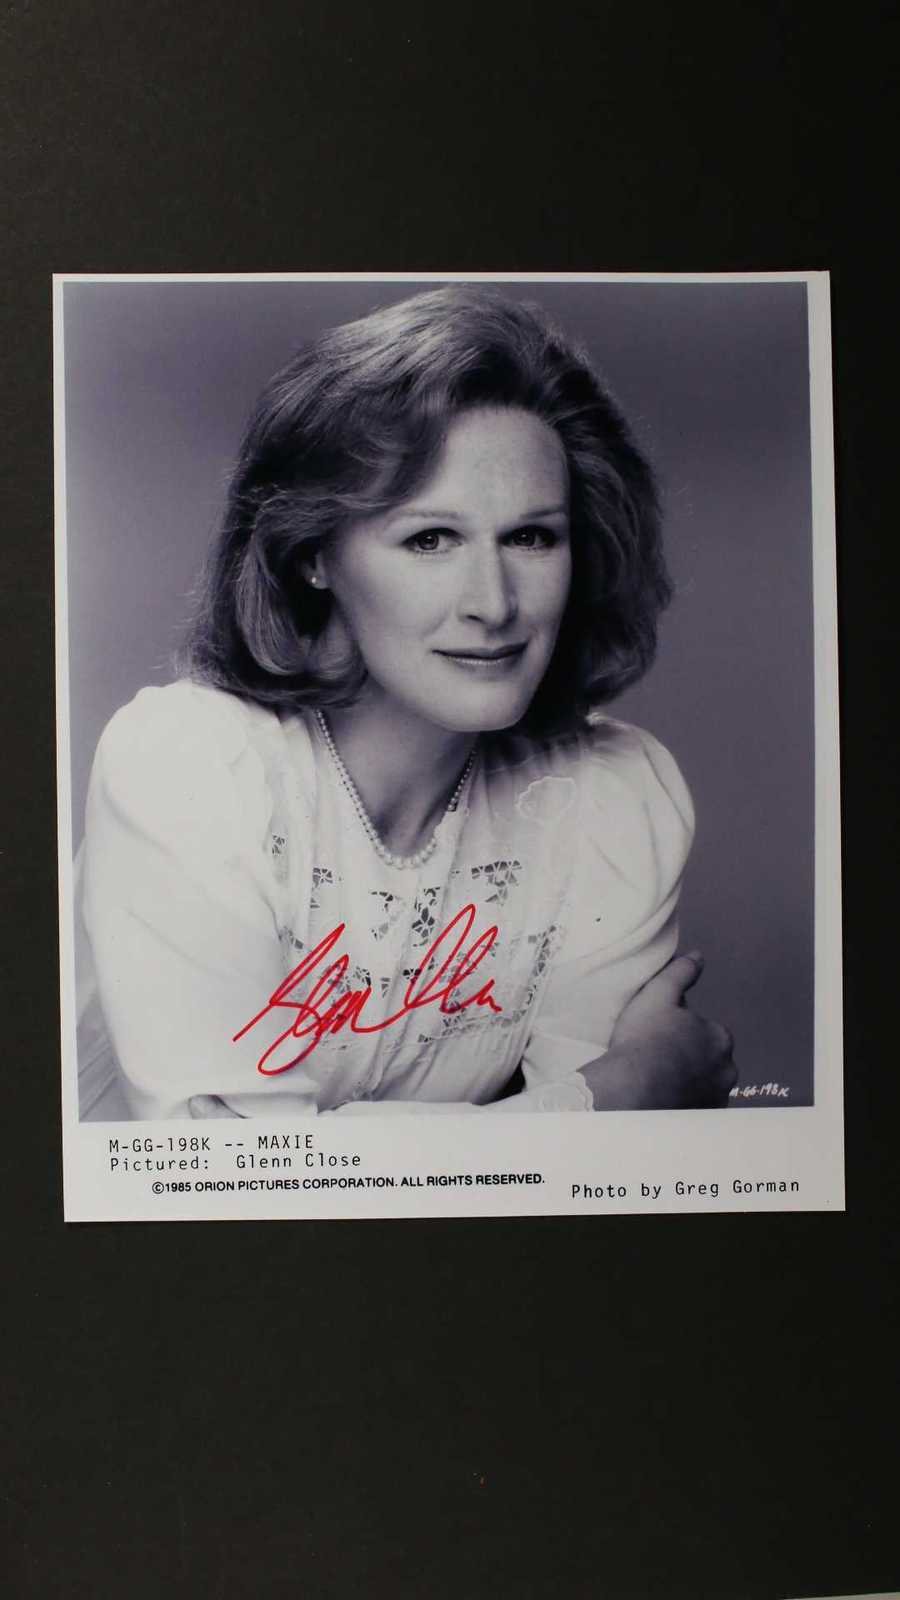 Primary image for Glenn Close Signed Autographed Glossy 8x10 Photo